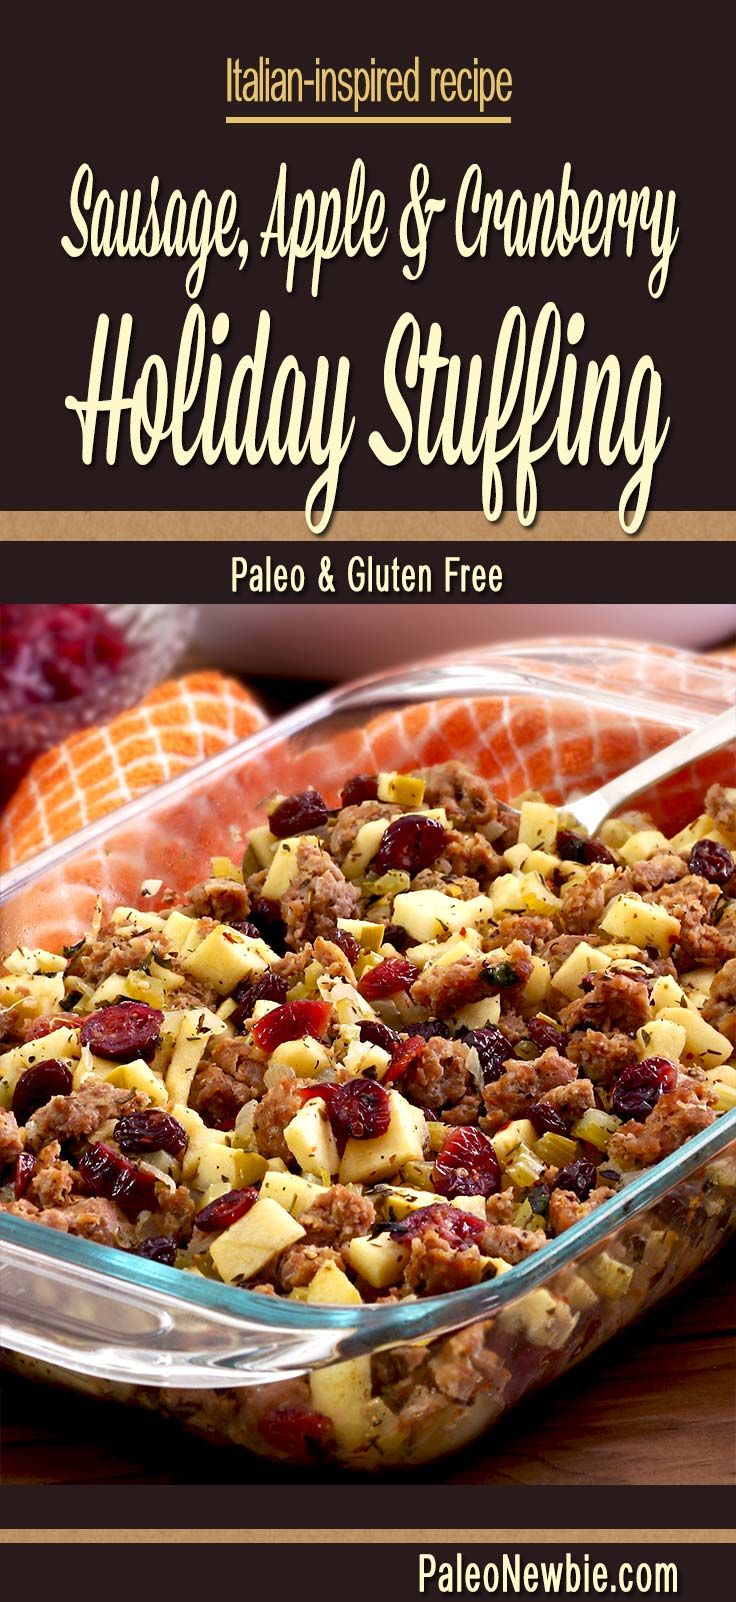 A deliciously different bread-free stuffing with sausage and Italian seasonings…my favorite stuffing recipe family-tested over many years.